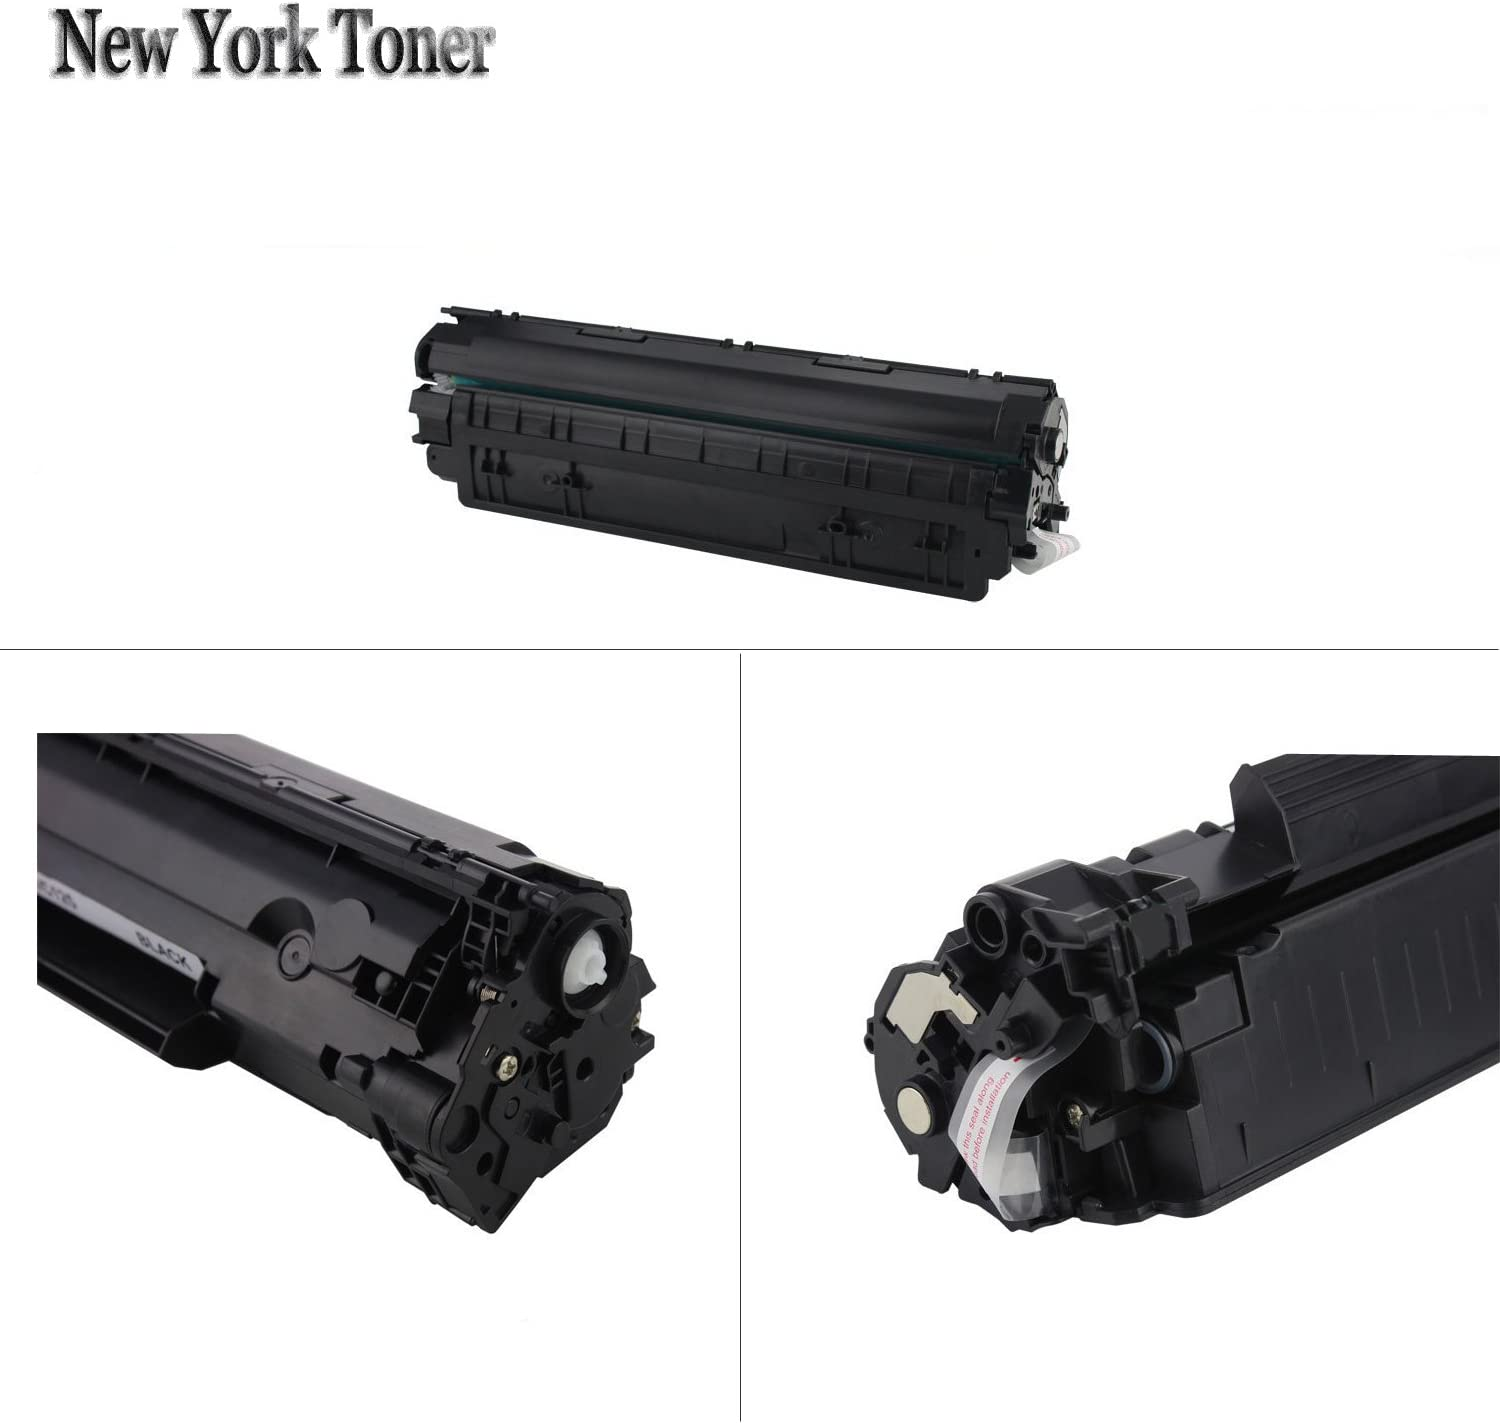 ImageClass MF229dw ImageClass MF216n NYT Compatible Toner Cartridge Replacement for Canon 137 for Canon ImageClass MF212w Black, 1-Pack ImageClass MF227dw